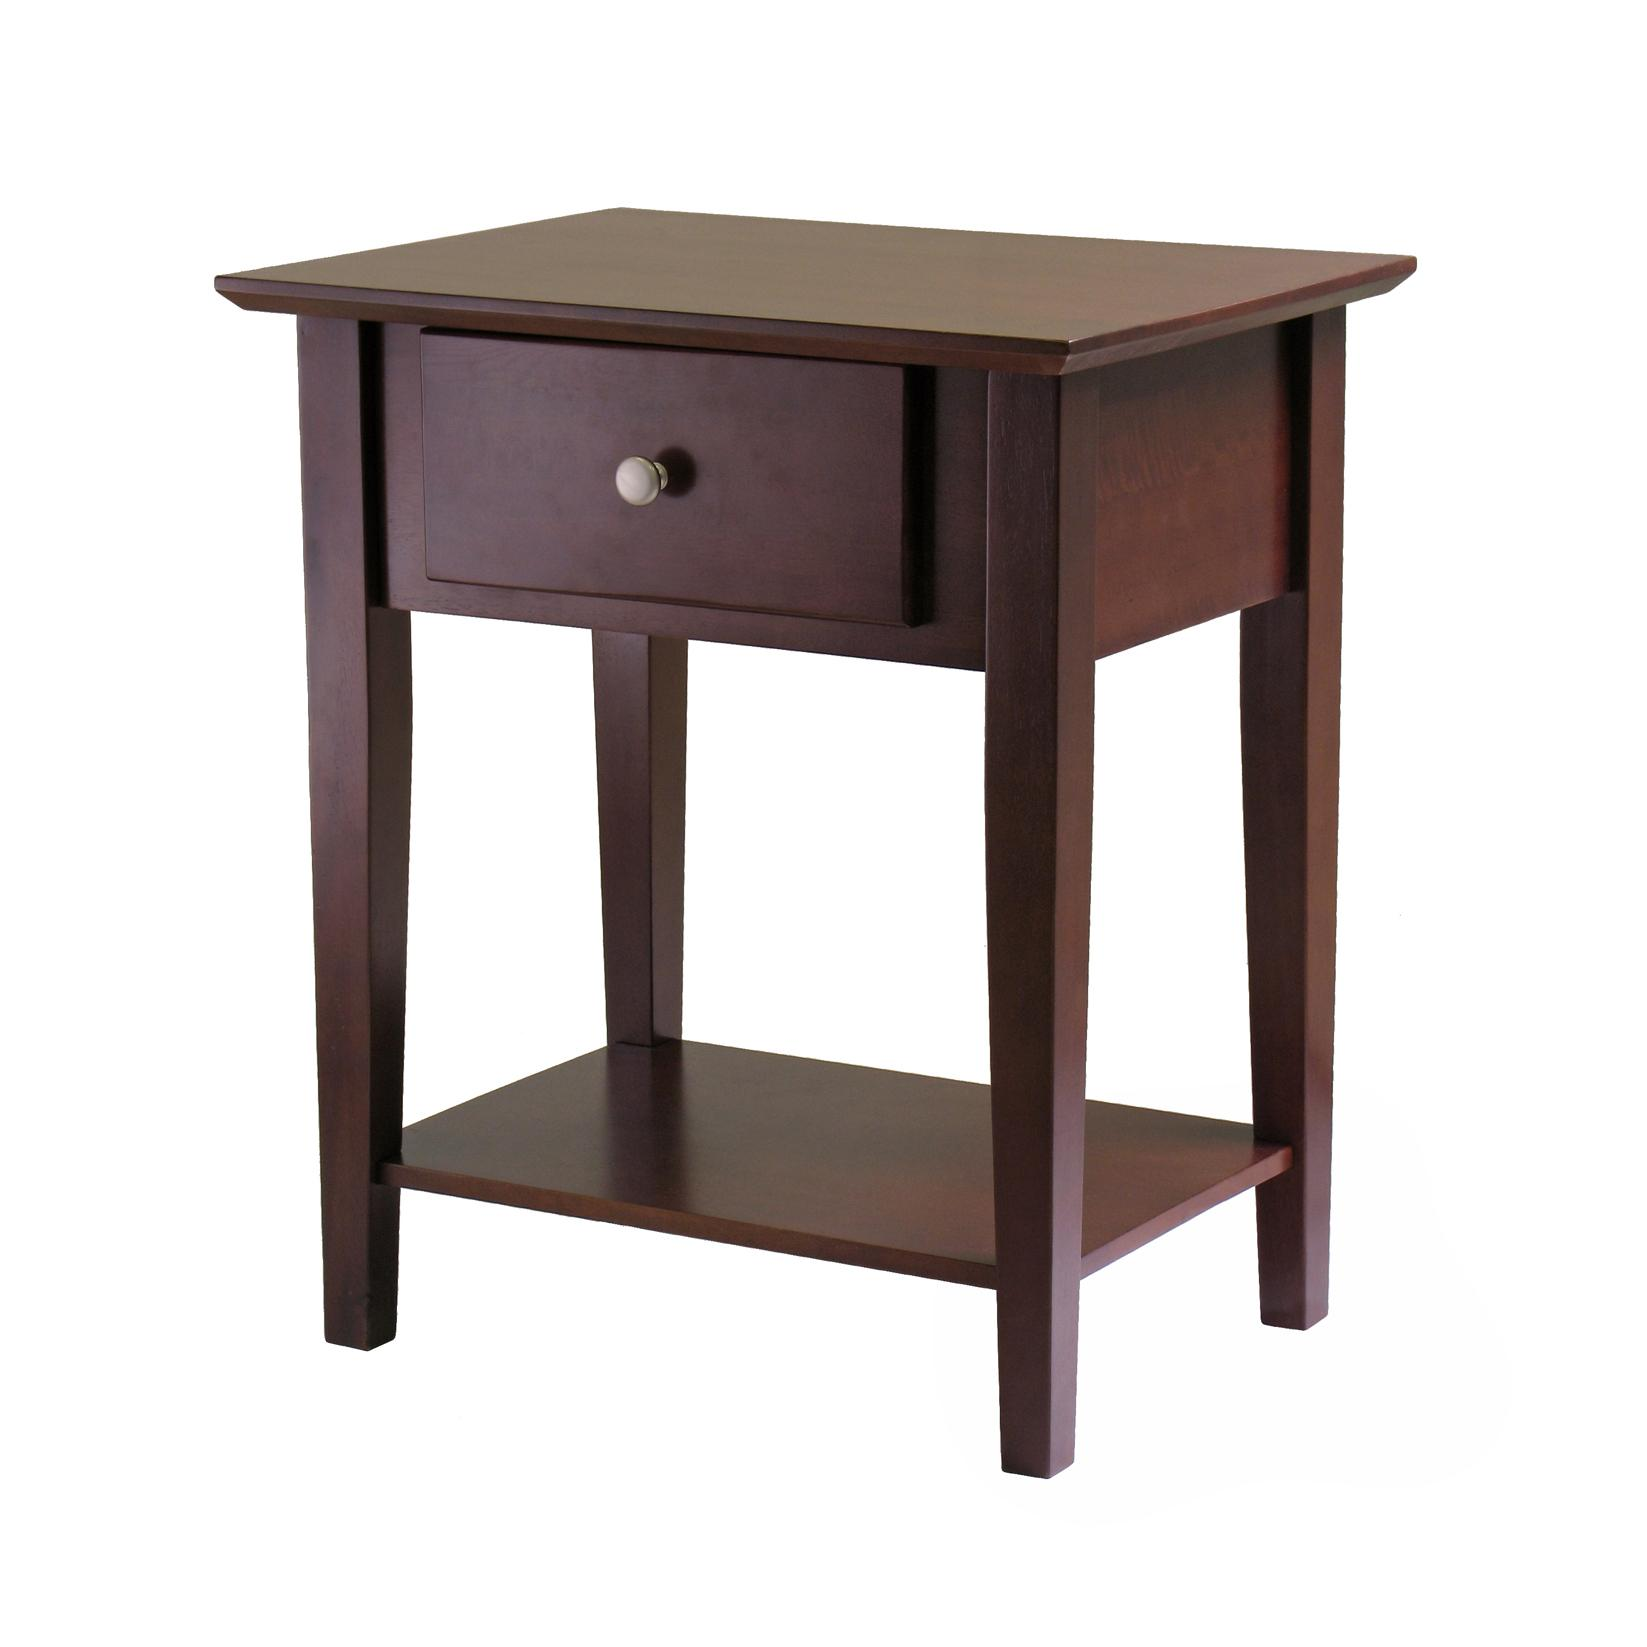 winsome wood shaker night stand antique walnut finish bedroom end tables from the manufacturer target accent rustic center table pulaski convertible sofa chaise patio top